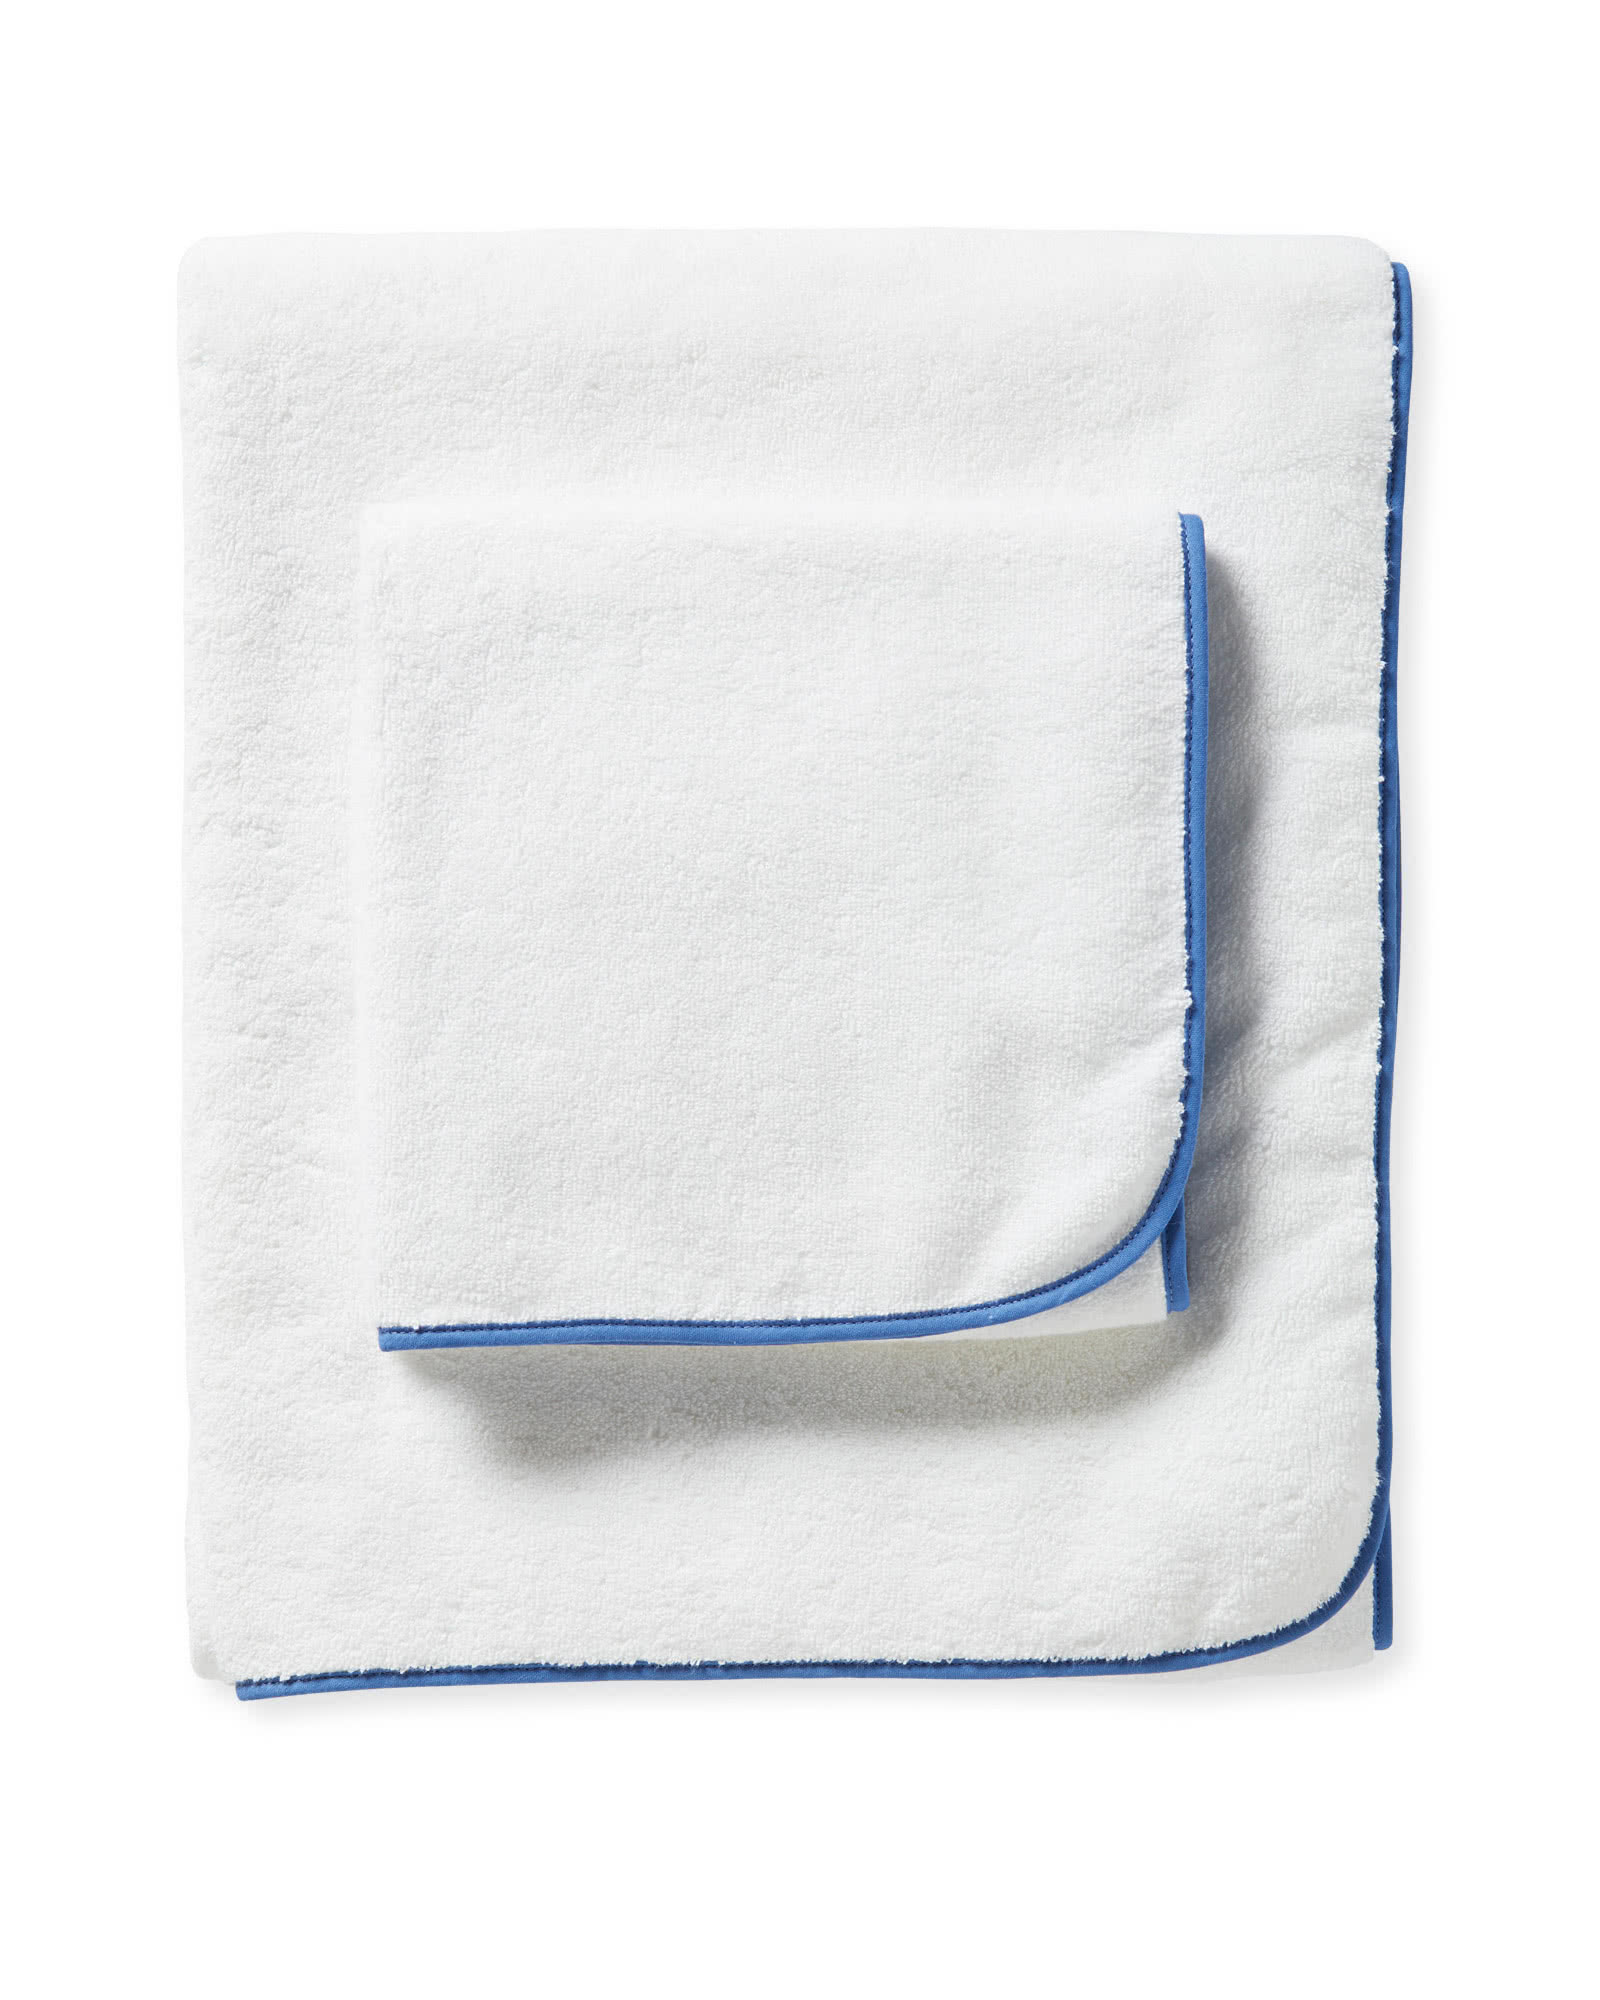 White Bath Towel With Blue Banded Border